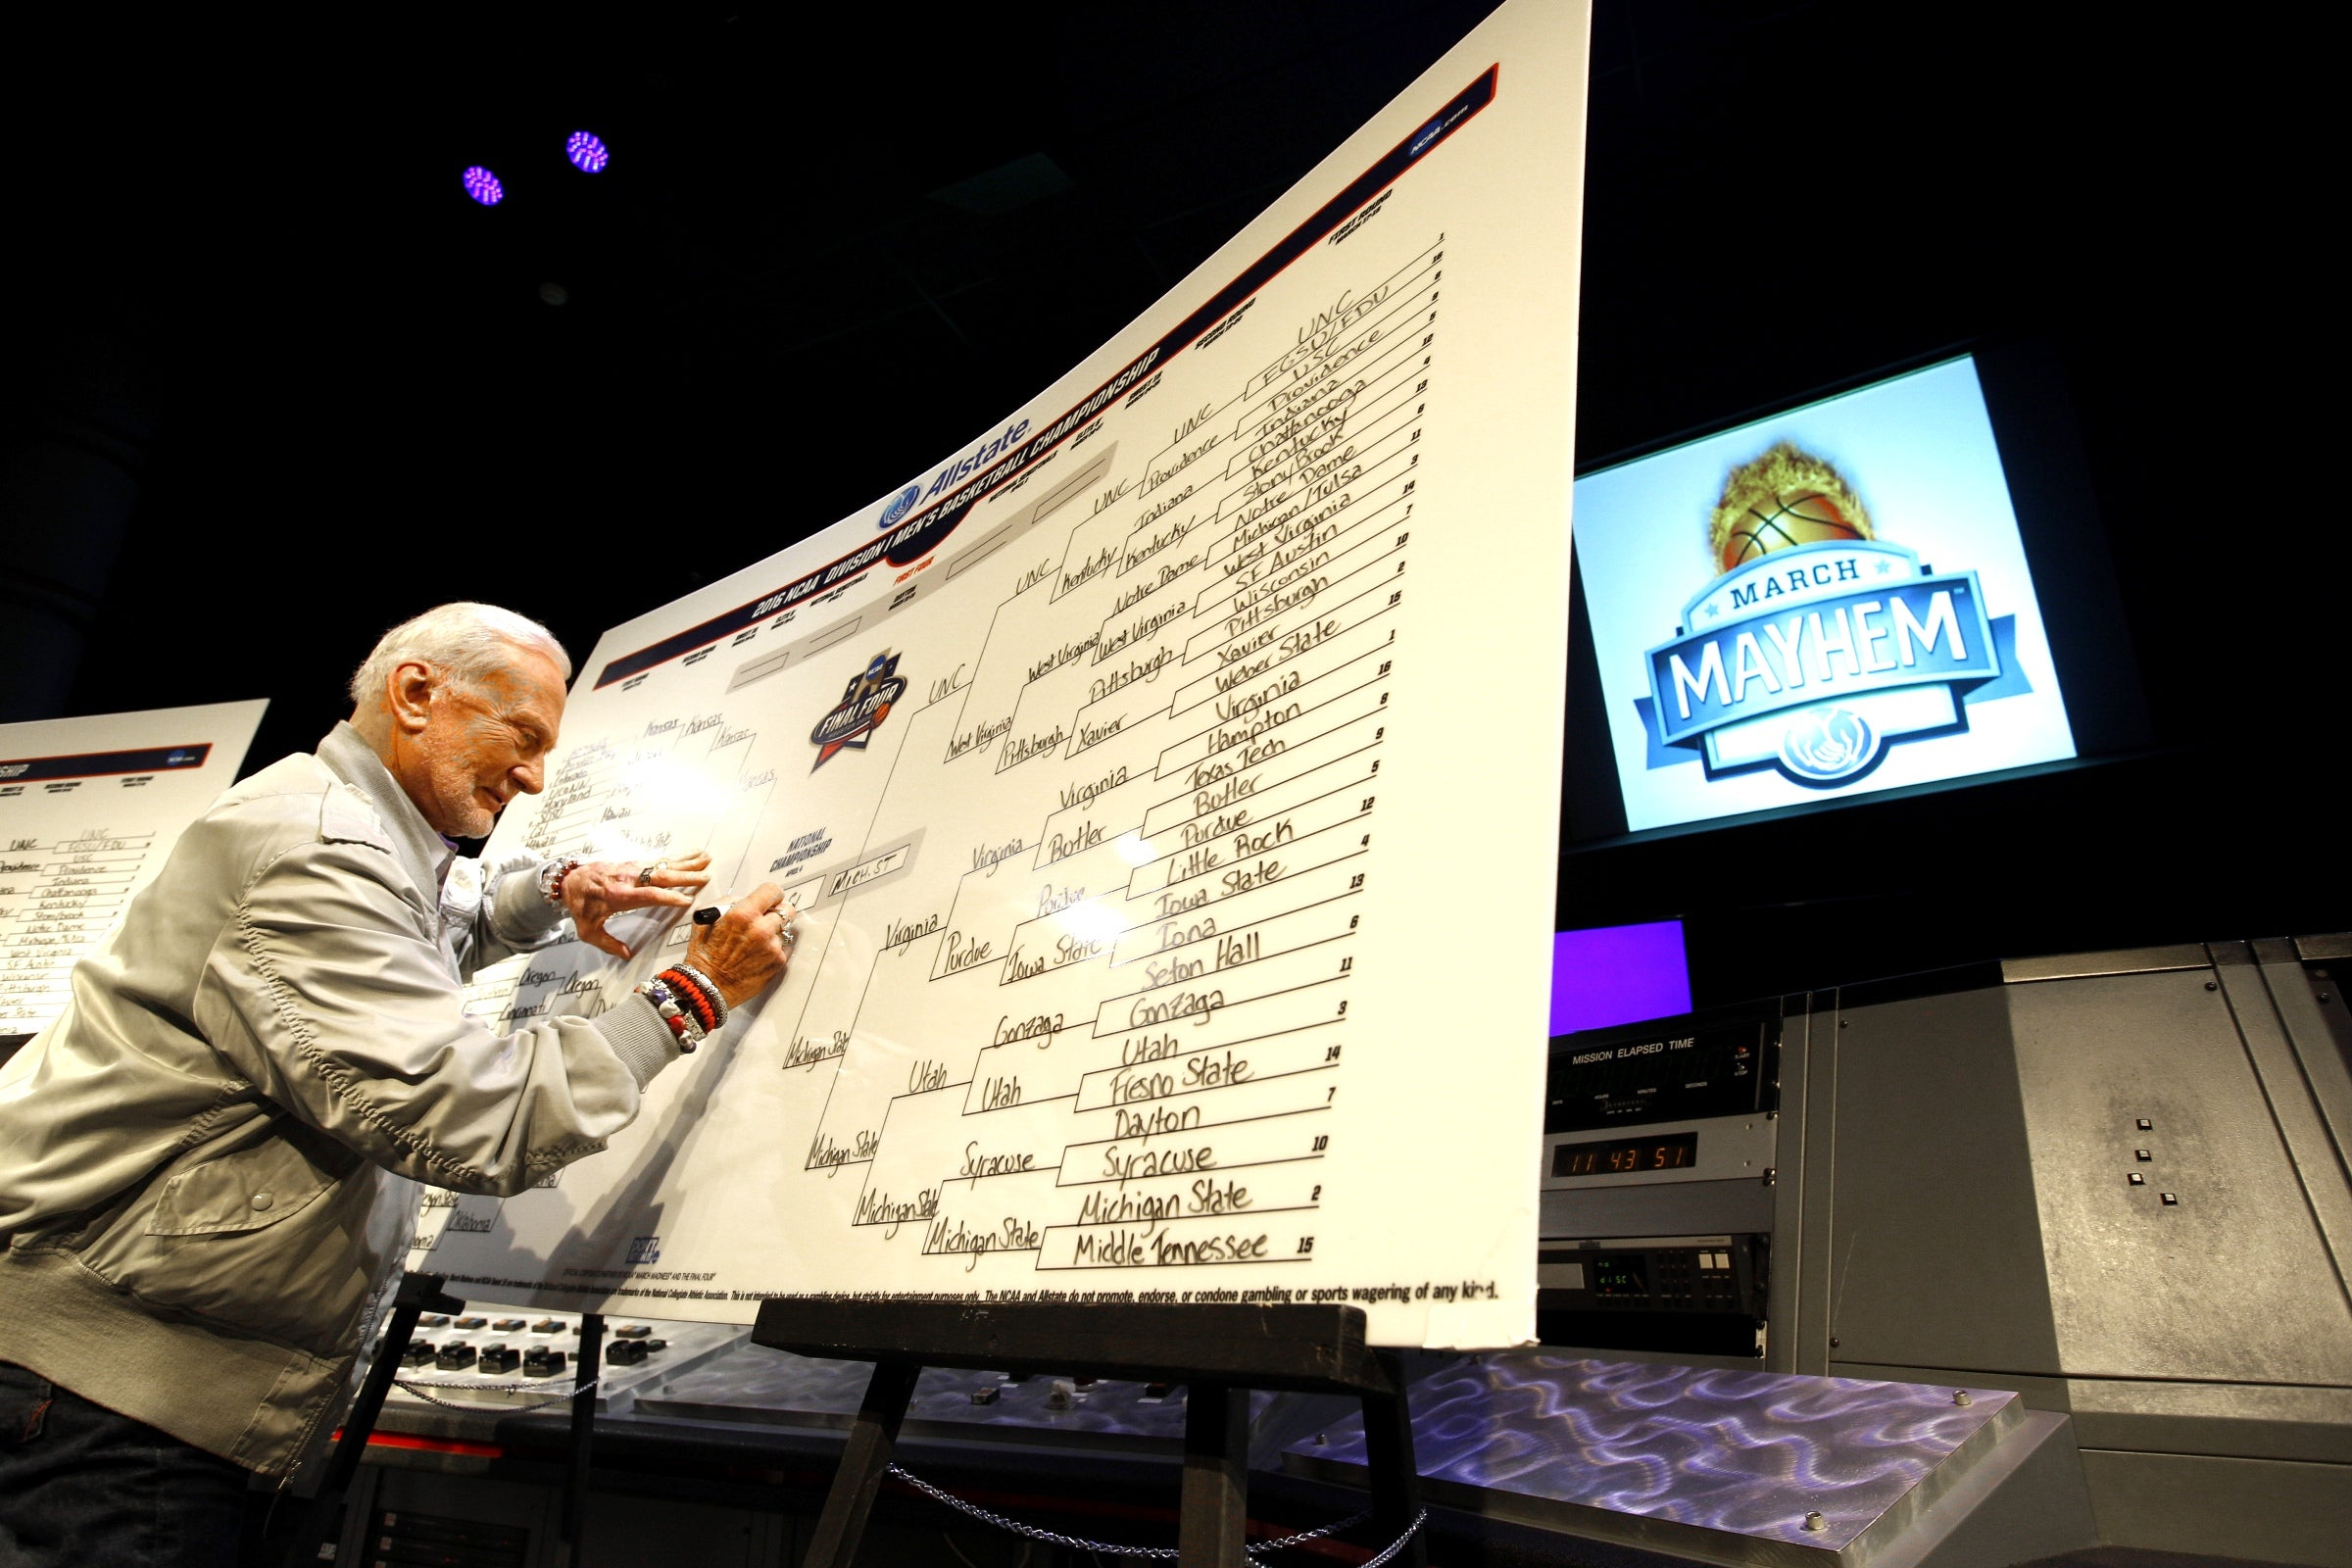 Buzz Aldrin Gives Us His Last-Minute March Madness Tips